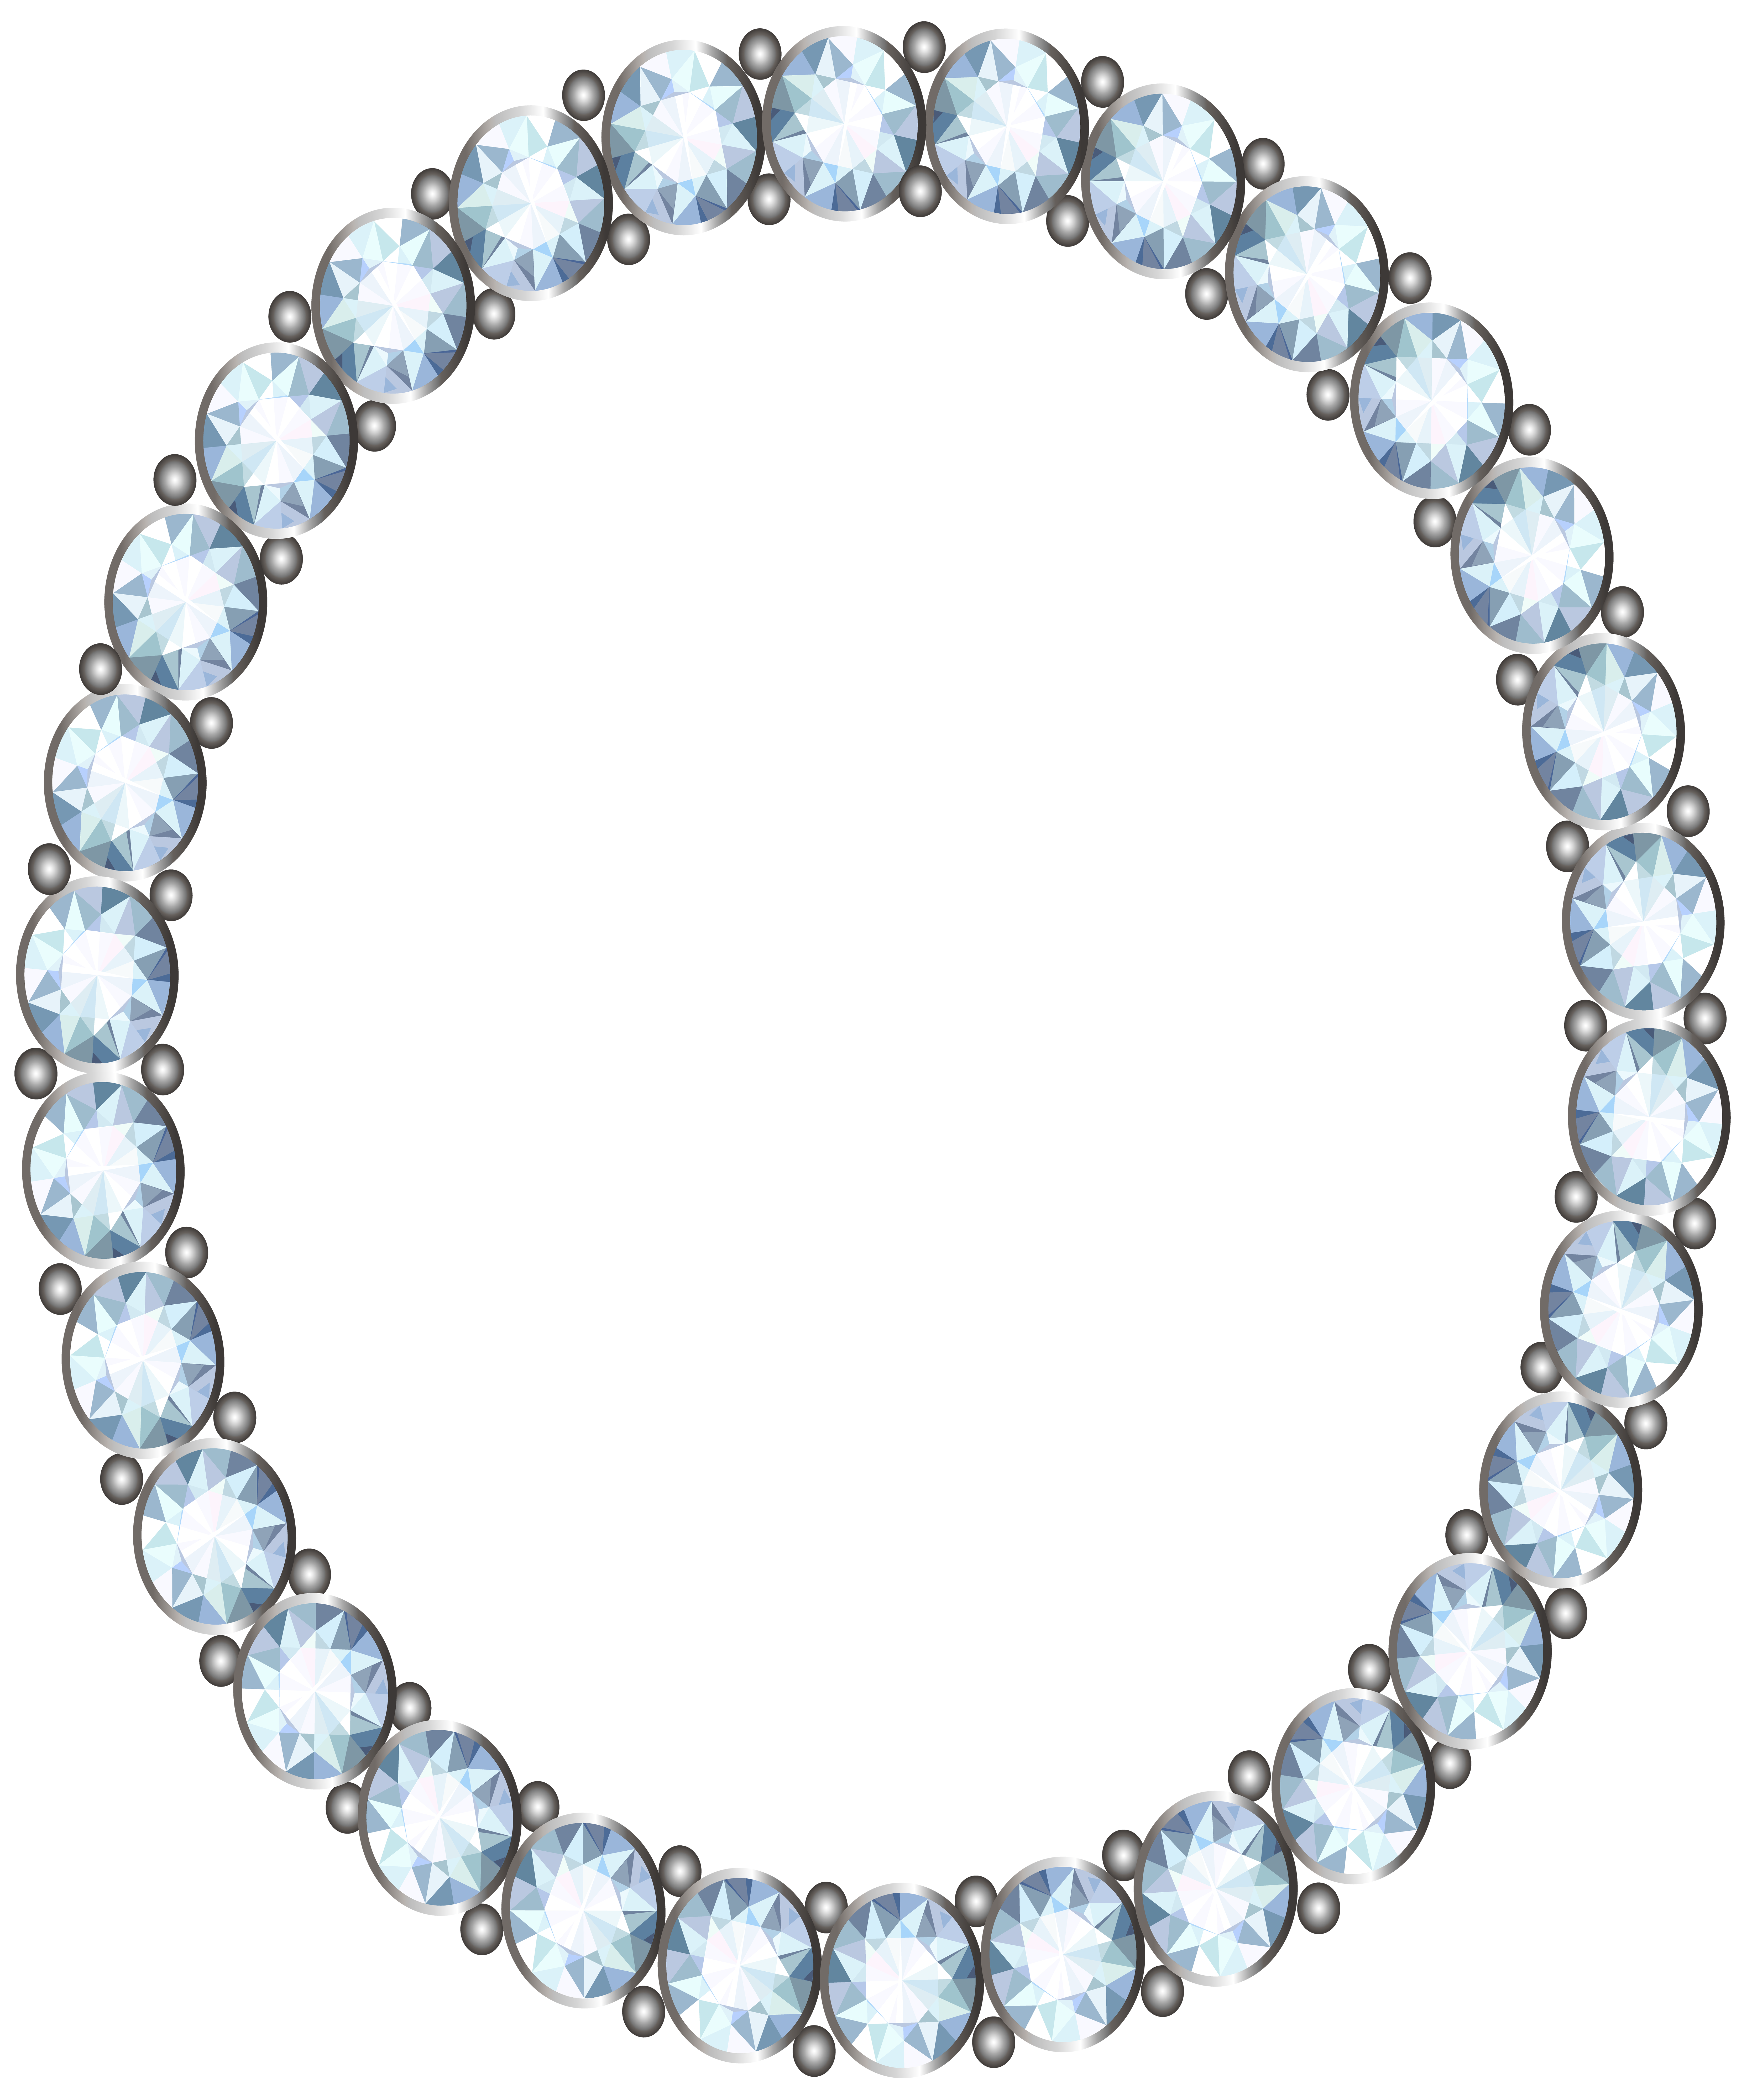 Diamond frame clipart png freeuse library Diamond Frame PNG Clip Art Image | Gallery Yopriceville - High ... png freeuse library